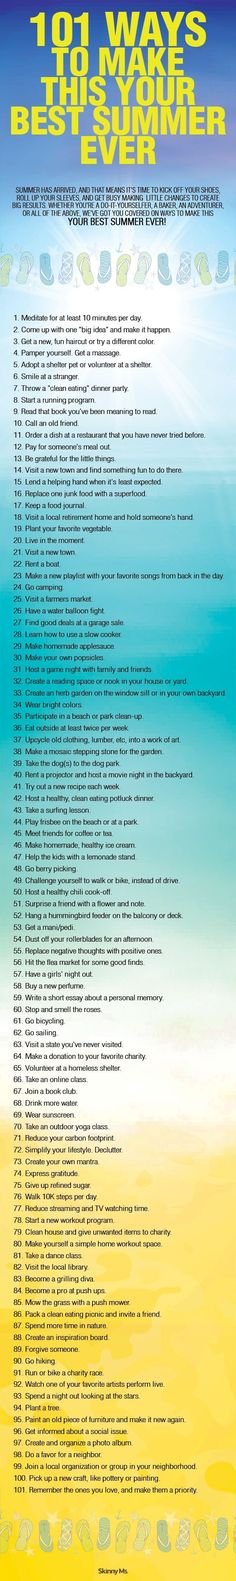 Your best summer ever will be this year and you will be the one to make it happen!  101 Ways to Make this Your BEST SUMMER EVER! #bestsummerever #summer2015